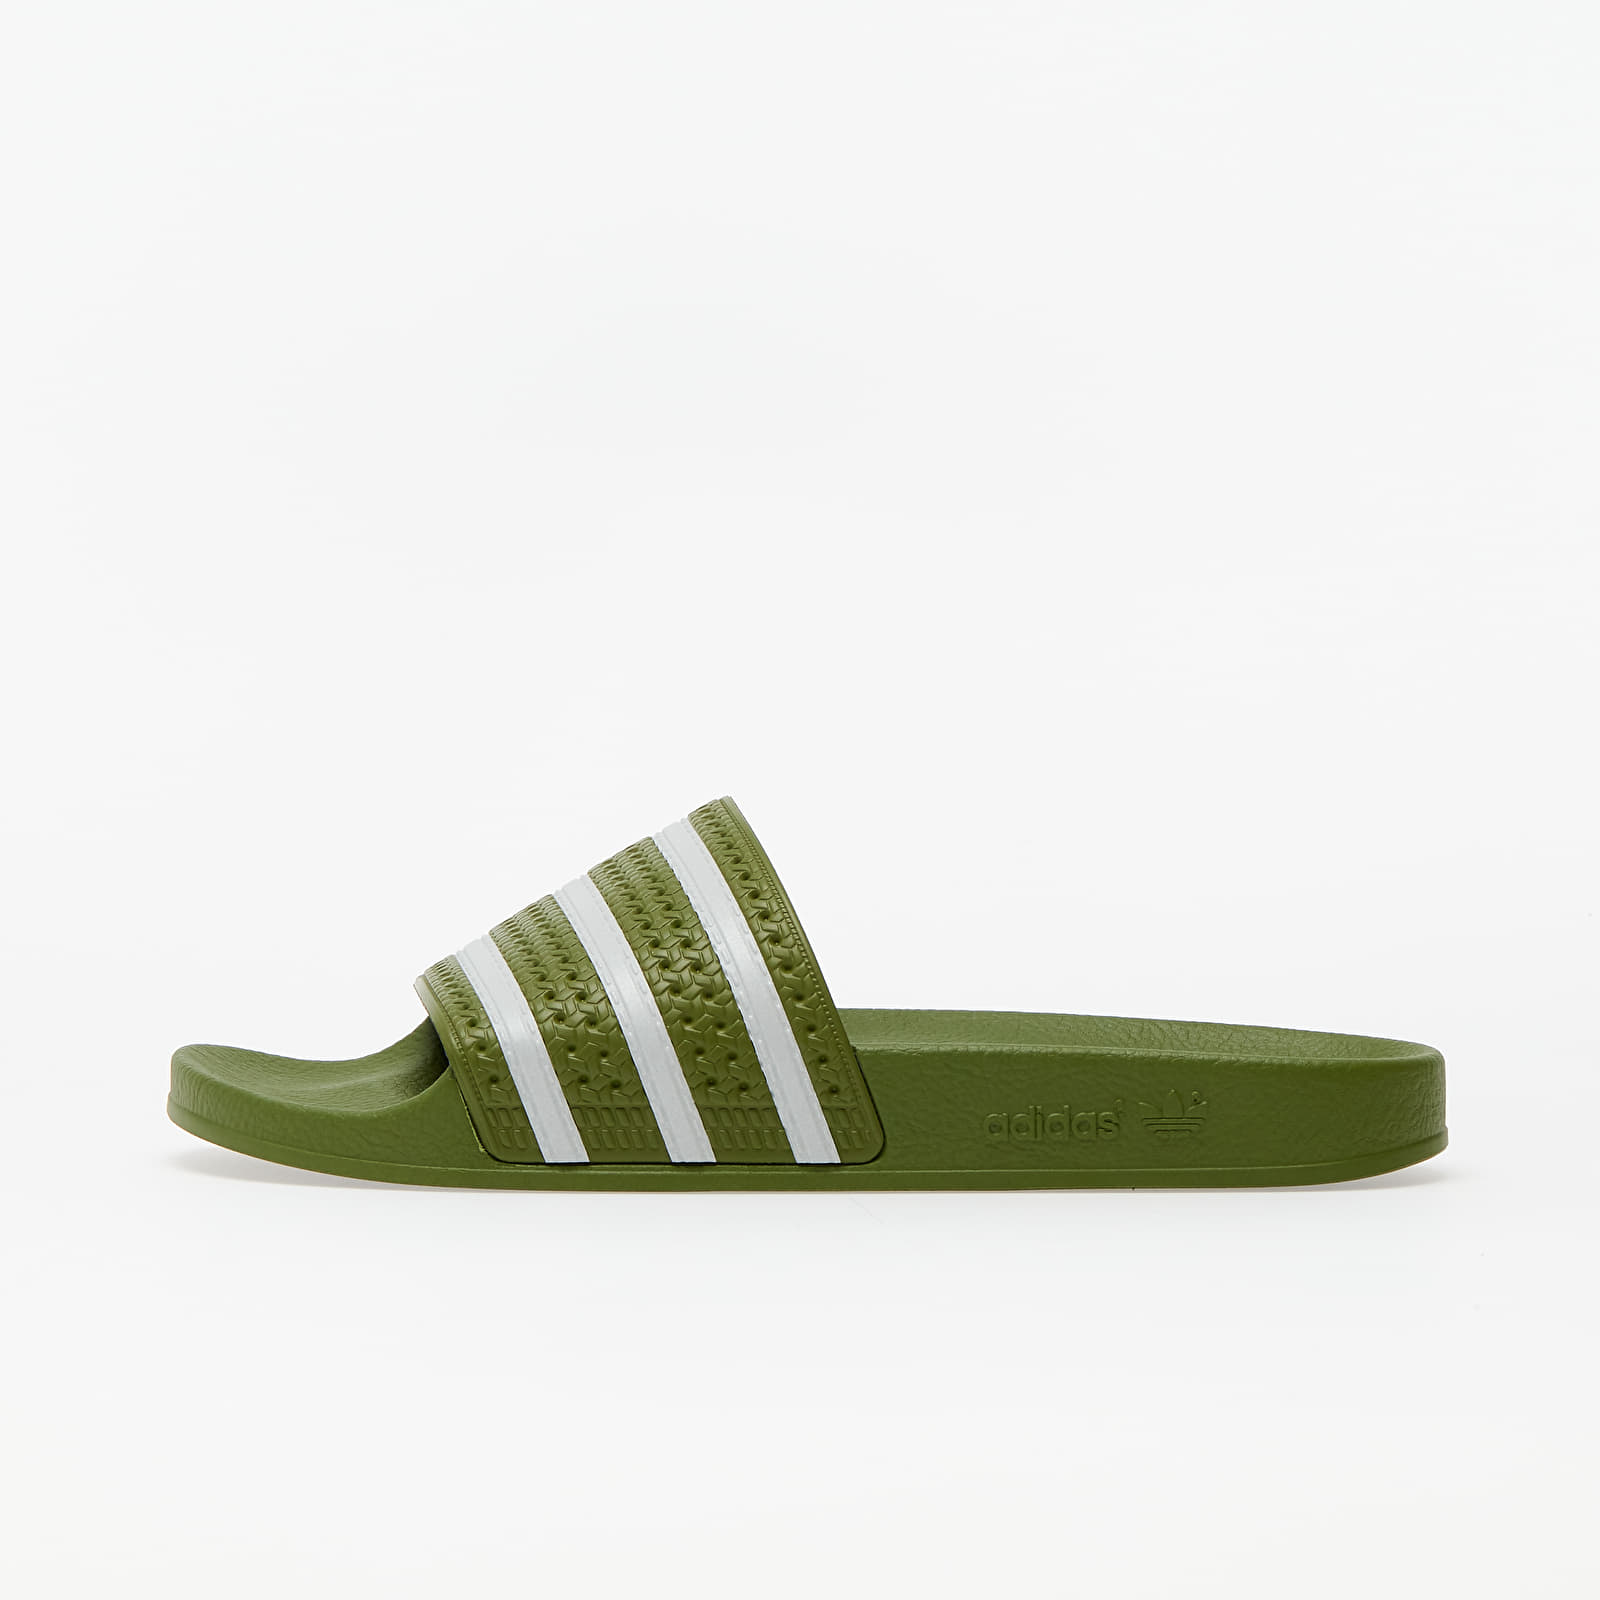 Chaussures et baskets homme adidas Adilette Foreign Green/ Supplier Colour/ Foreign Green